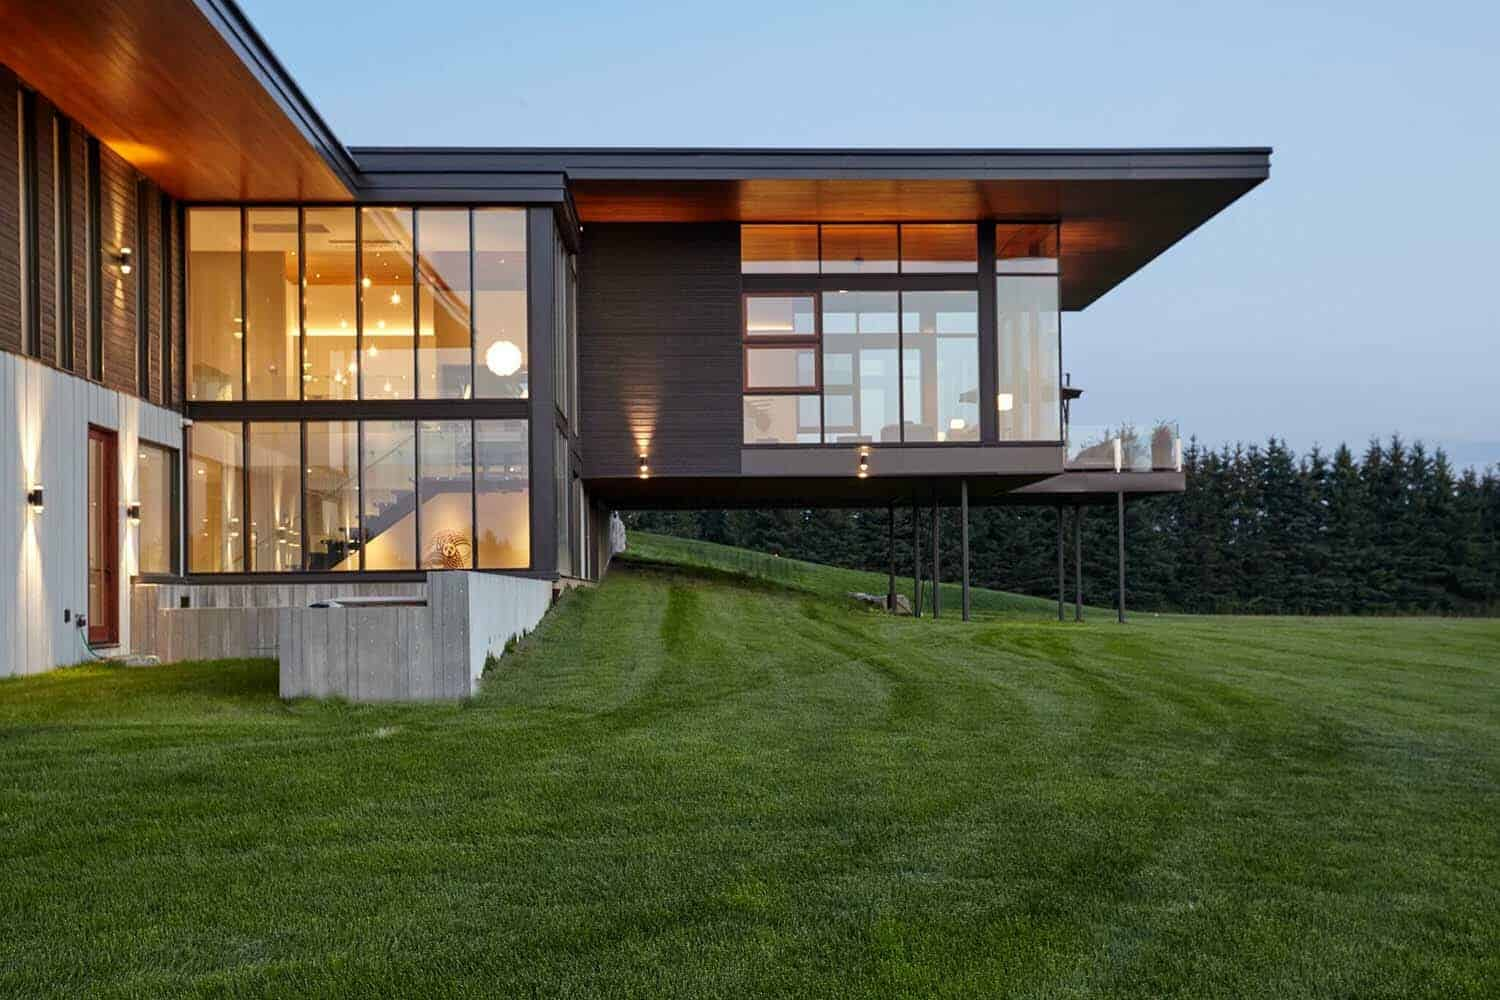 Contemporary Home Design-Trevor McIvor Architect-06-1 Kindesign